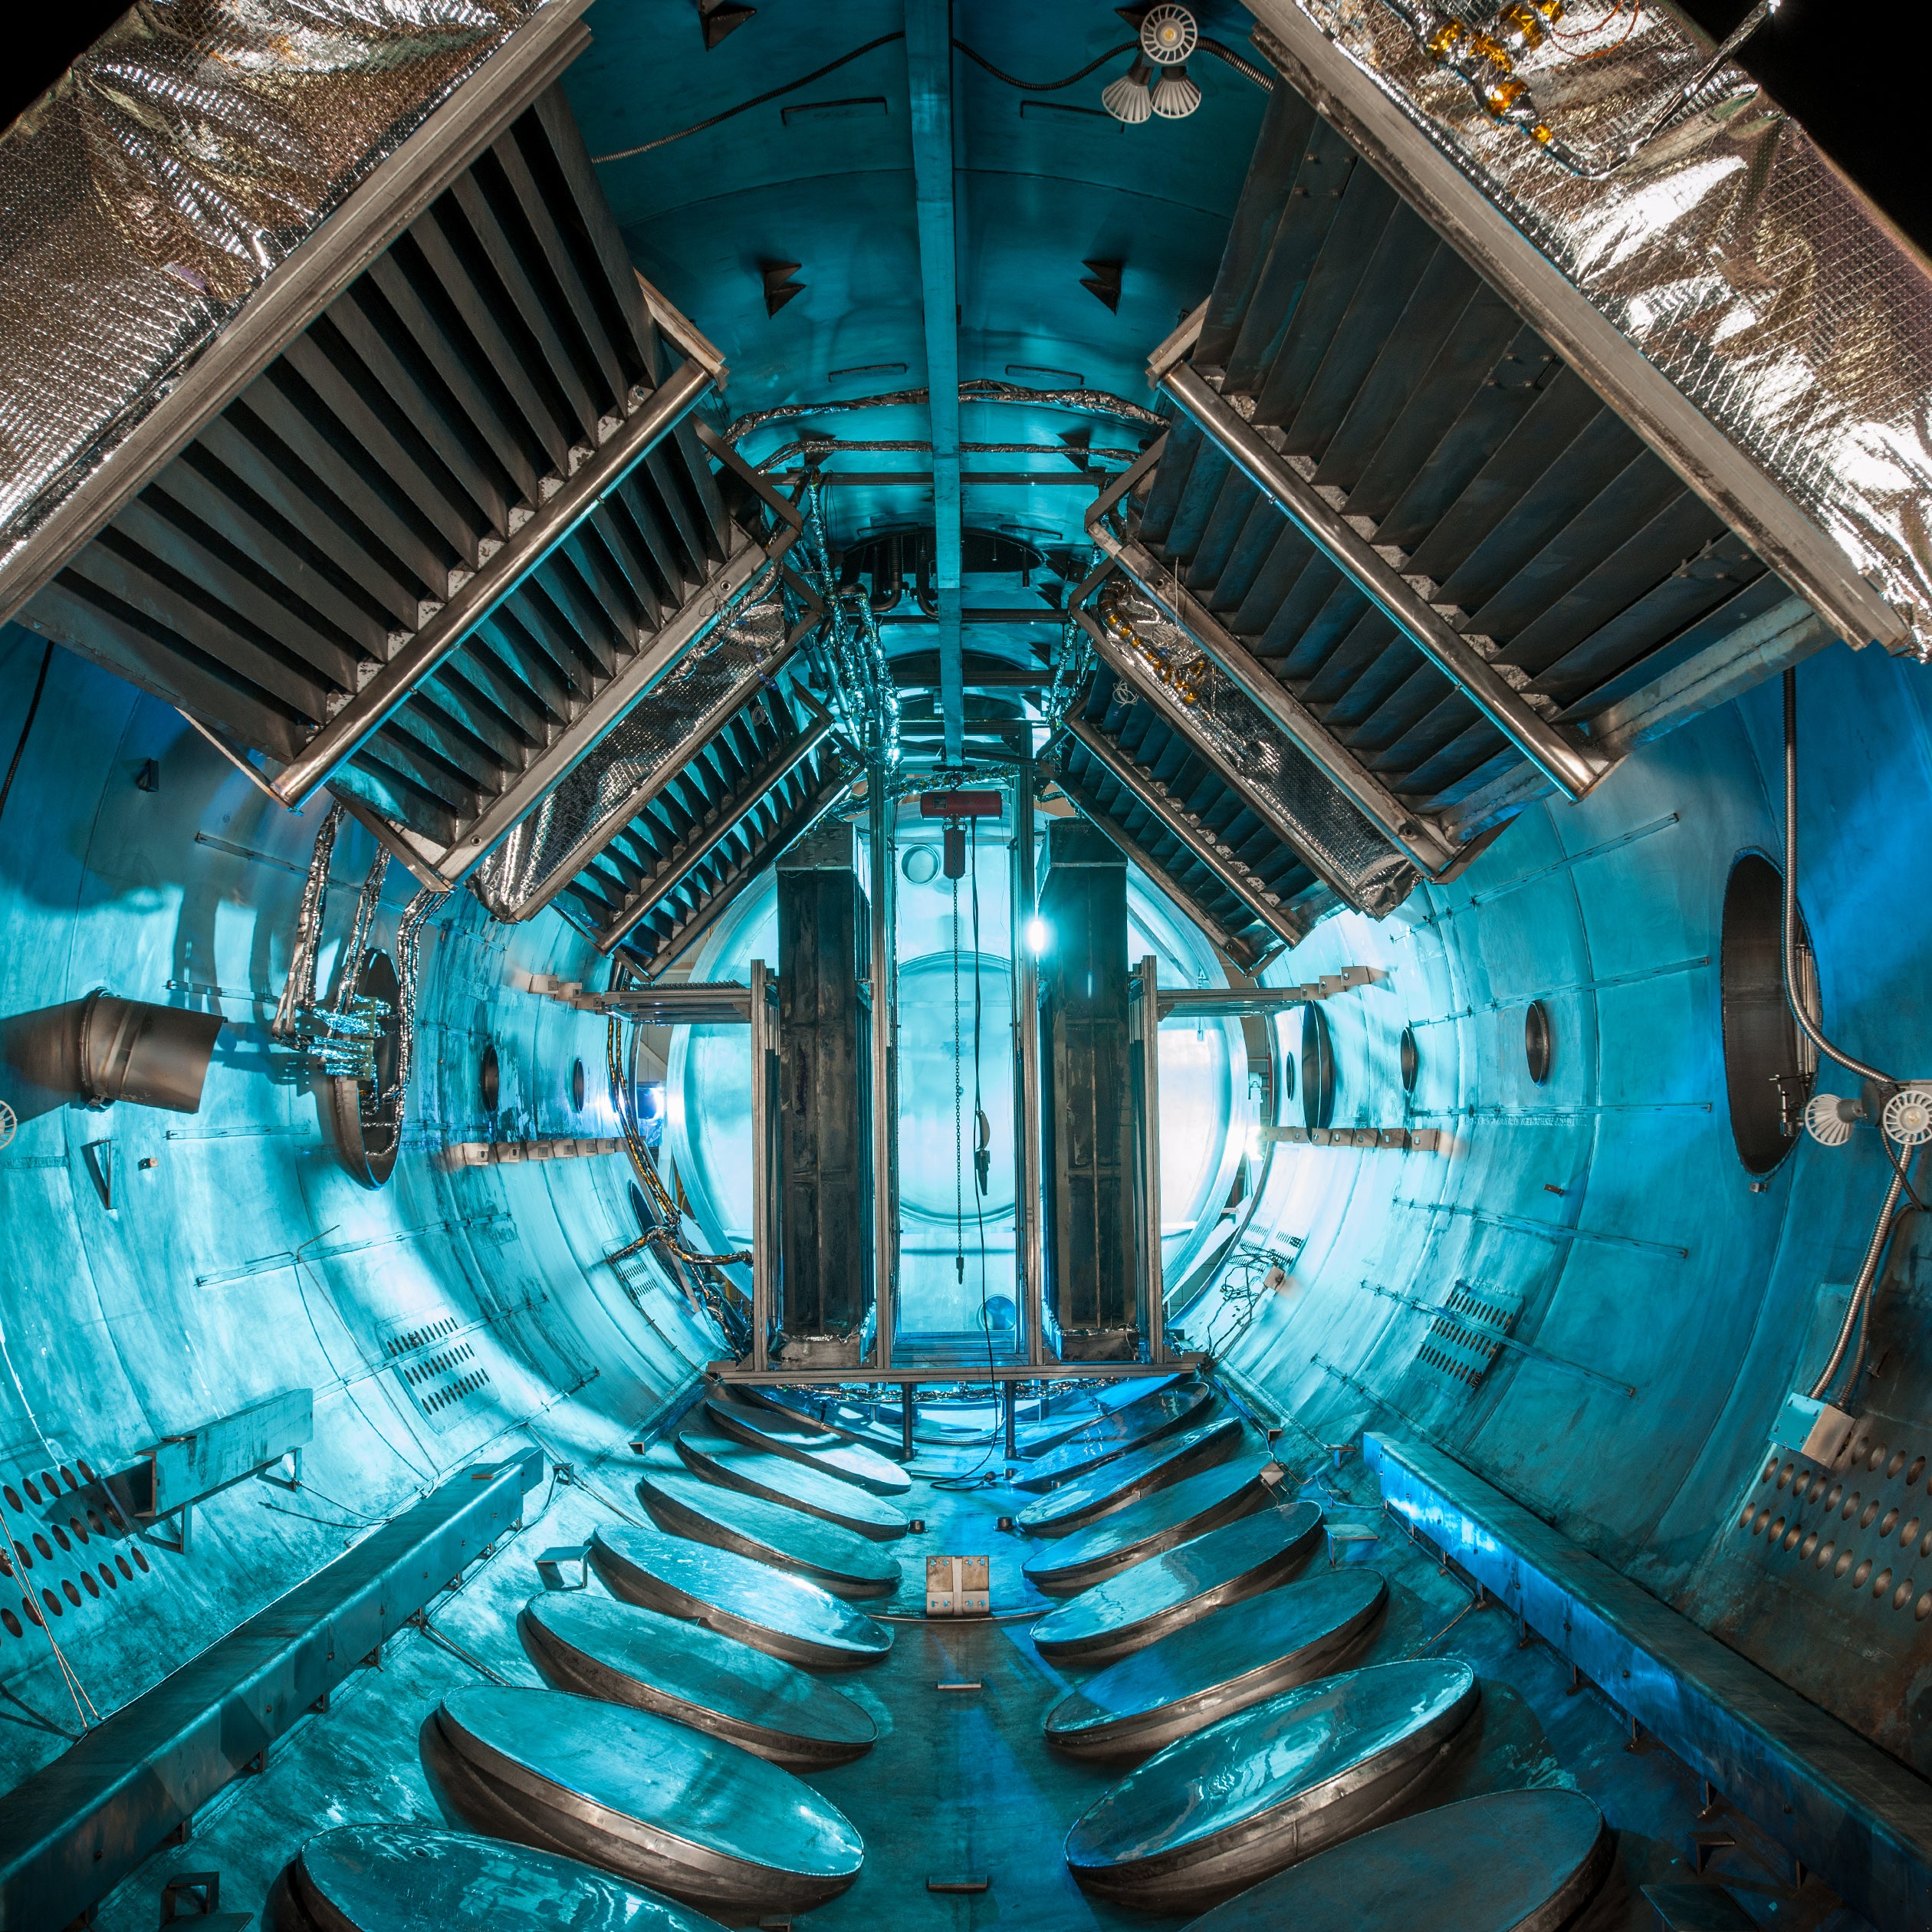 This Vacuum Chamber Looks Like Some Futuristic Spaceship Corridor